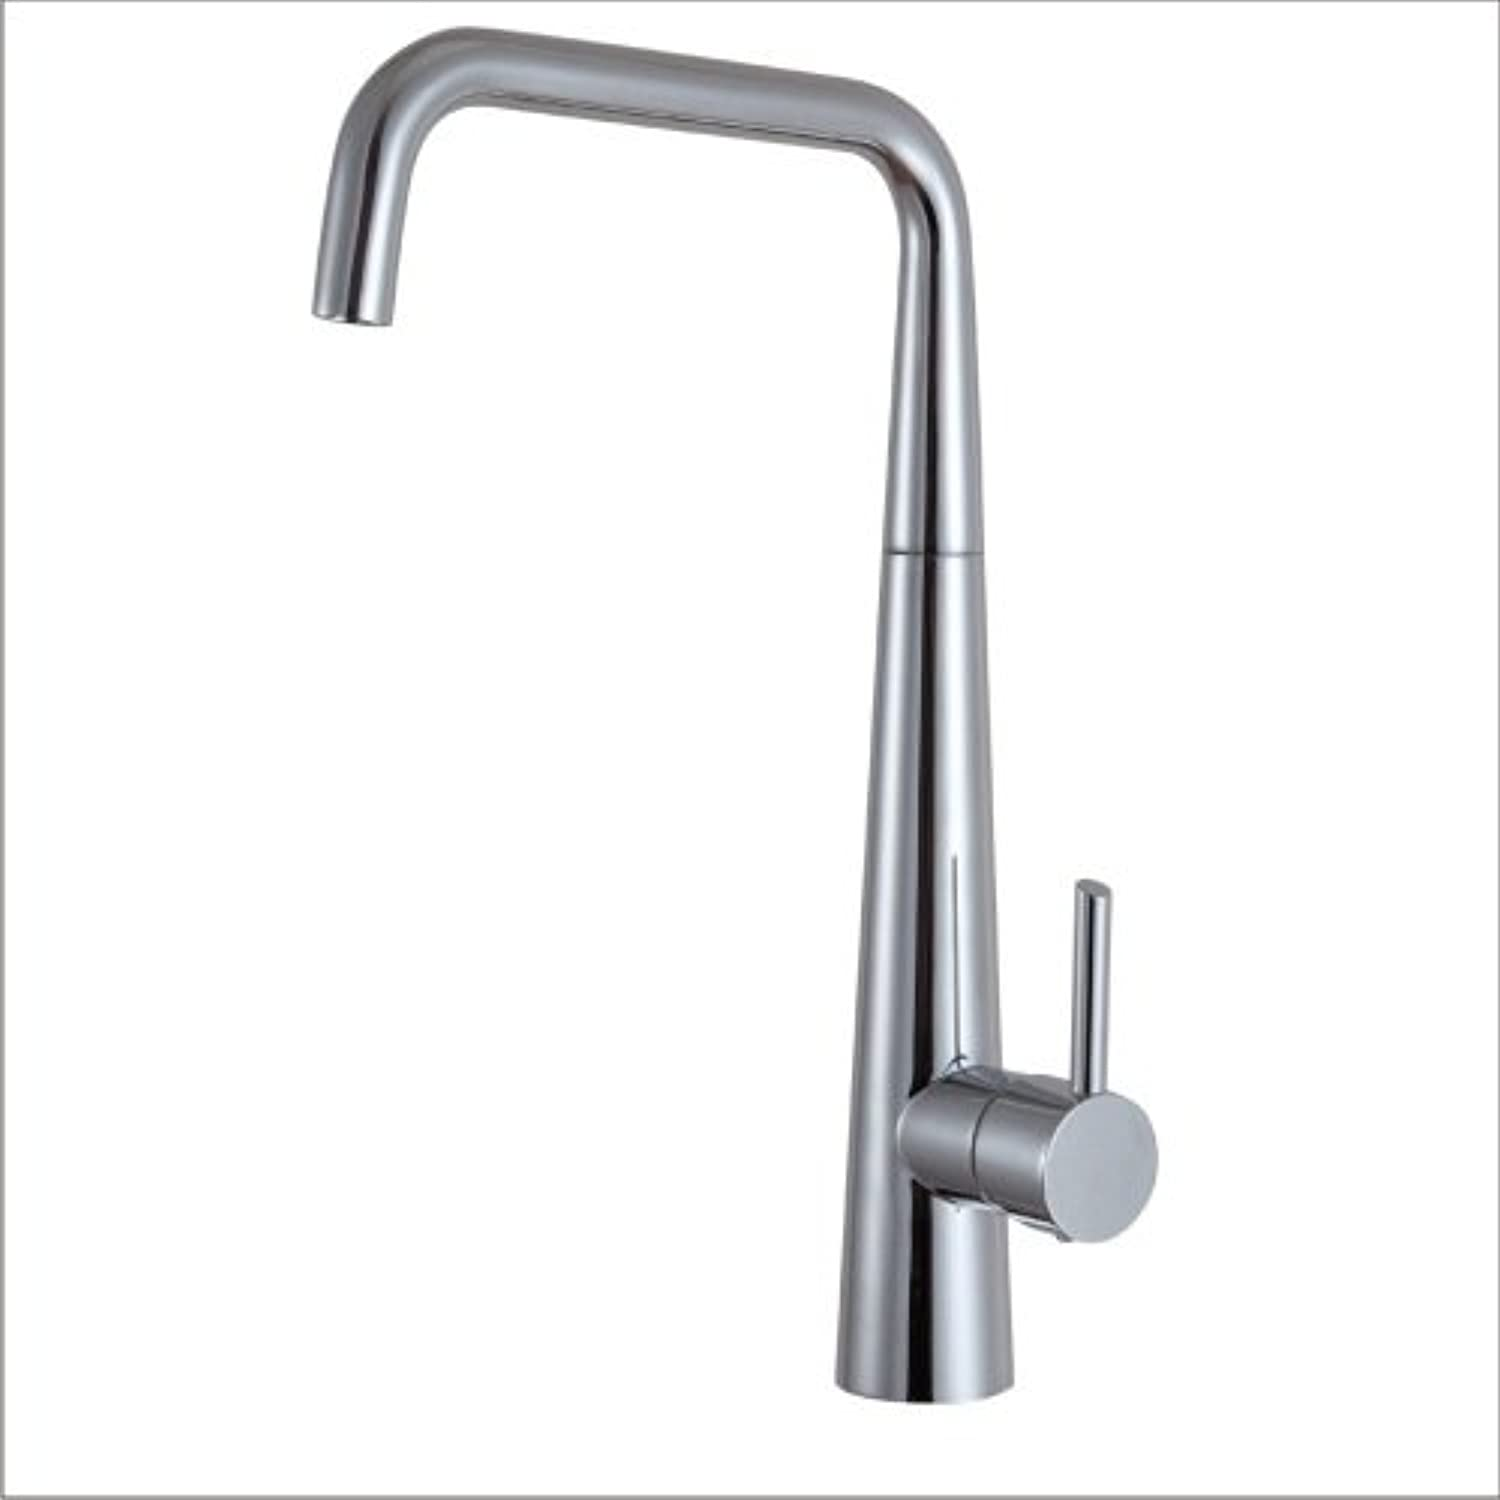 Commercial Single Lever Pull Down Kitchen Sink Faucet Brass Constructed Polished Faucet Kitchen Sink Hot and Cold Water Mixer Tap Copper Lead-Free Sink Faucet